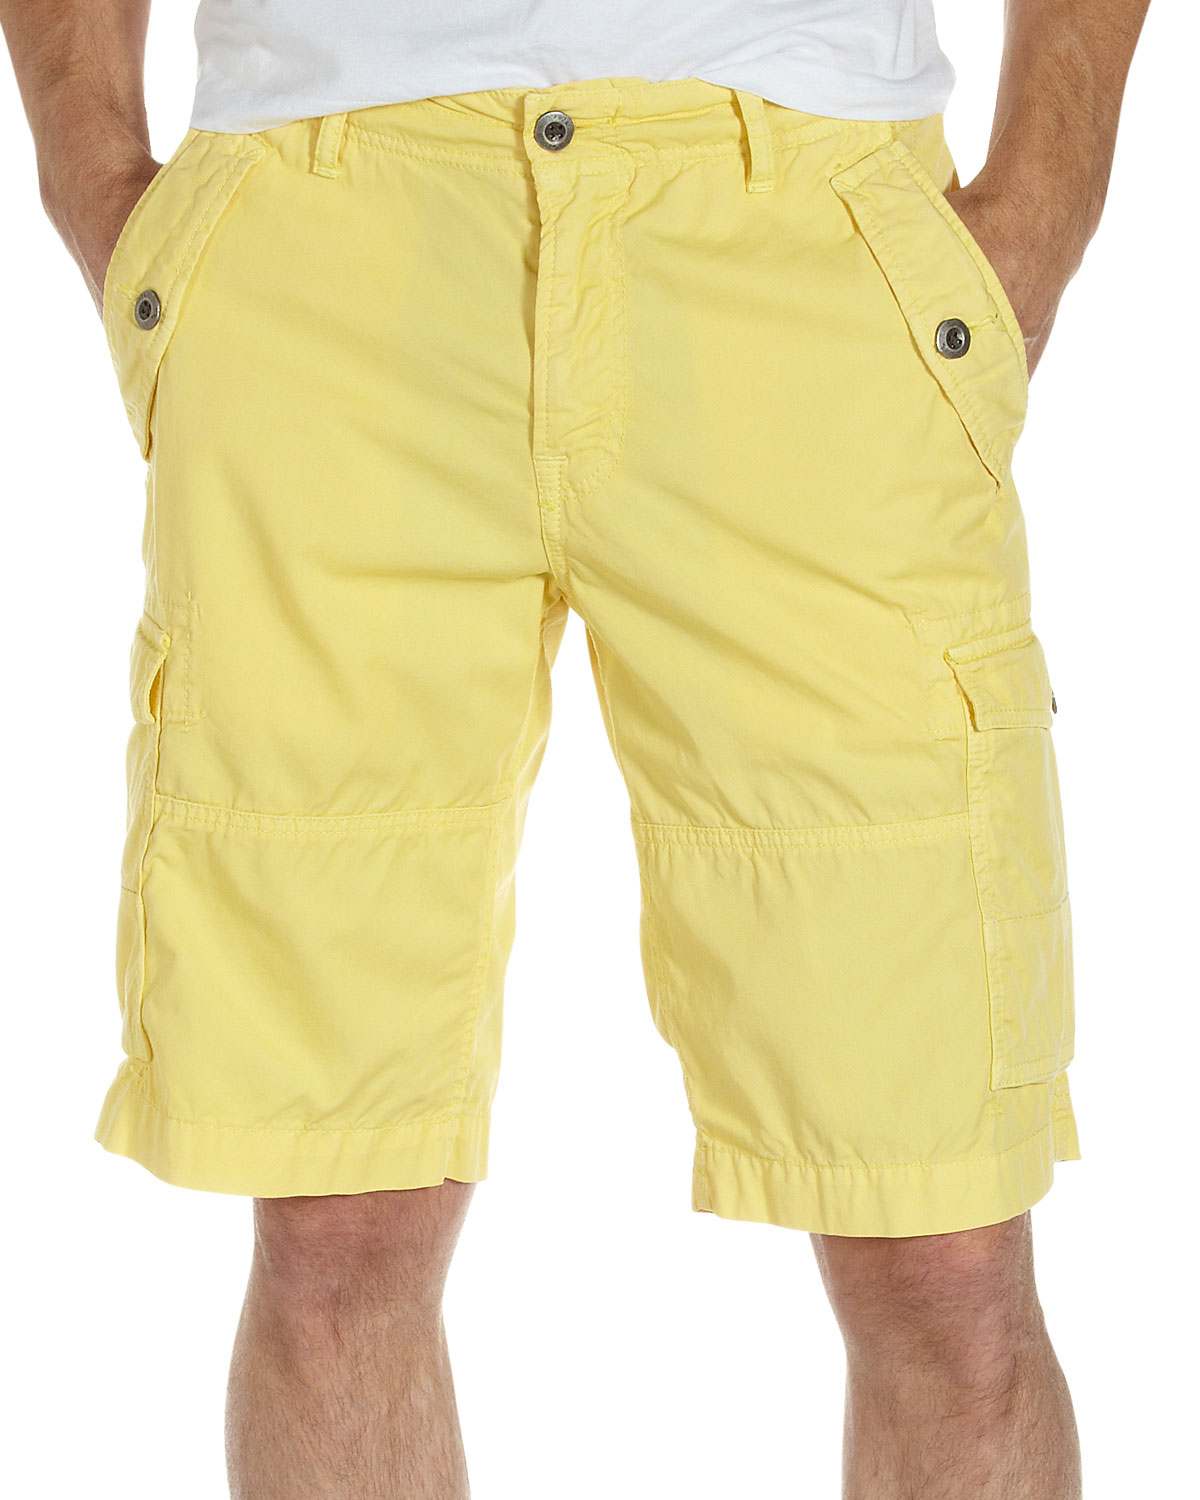 Find mens yellow shorts at ShopStyle. Shop the latest collection of mens yellow shorts from the most popular stores - all in one place.